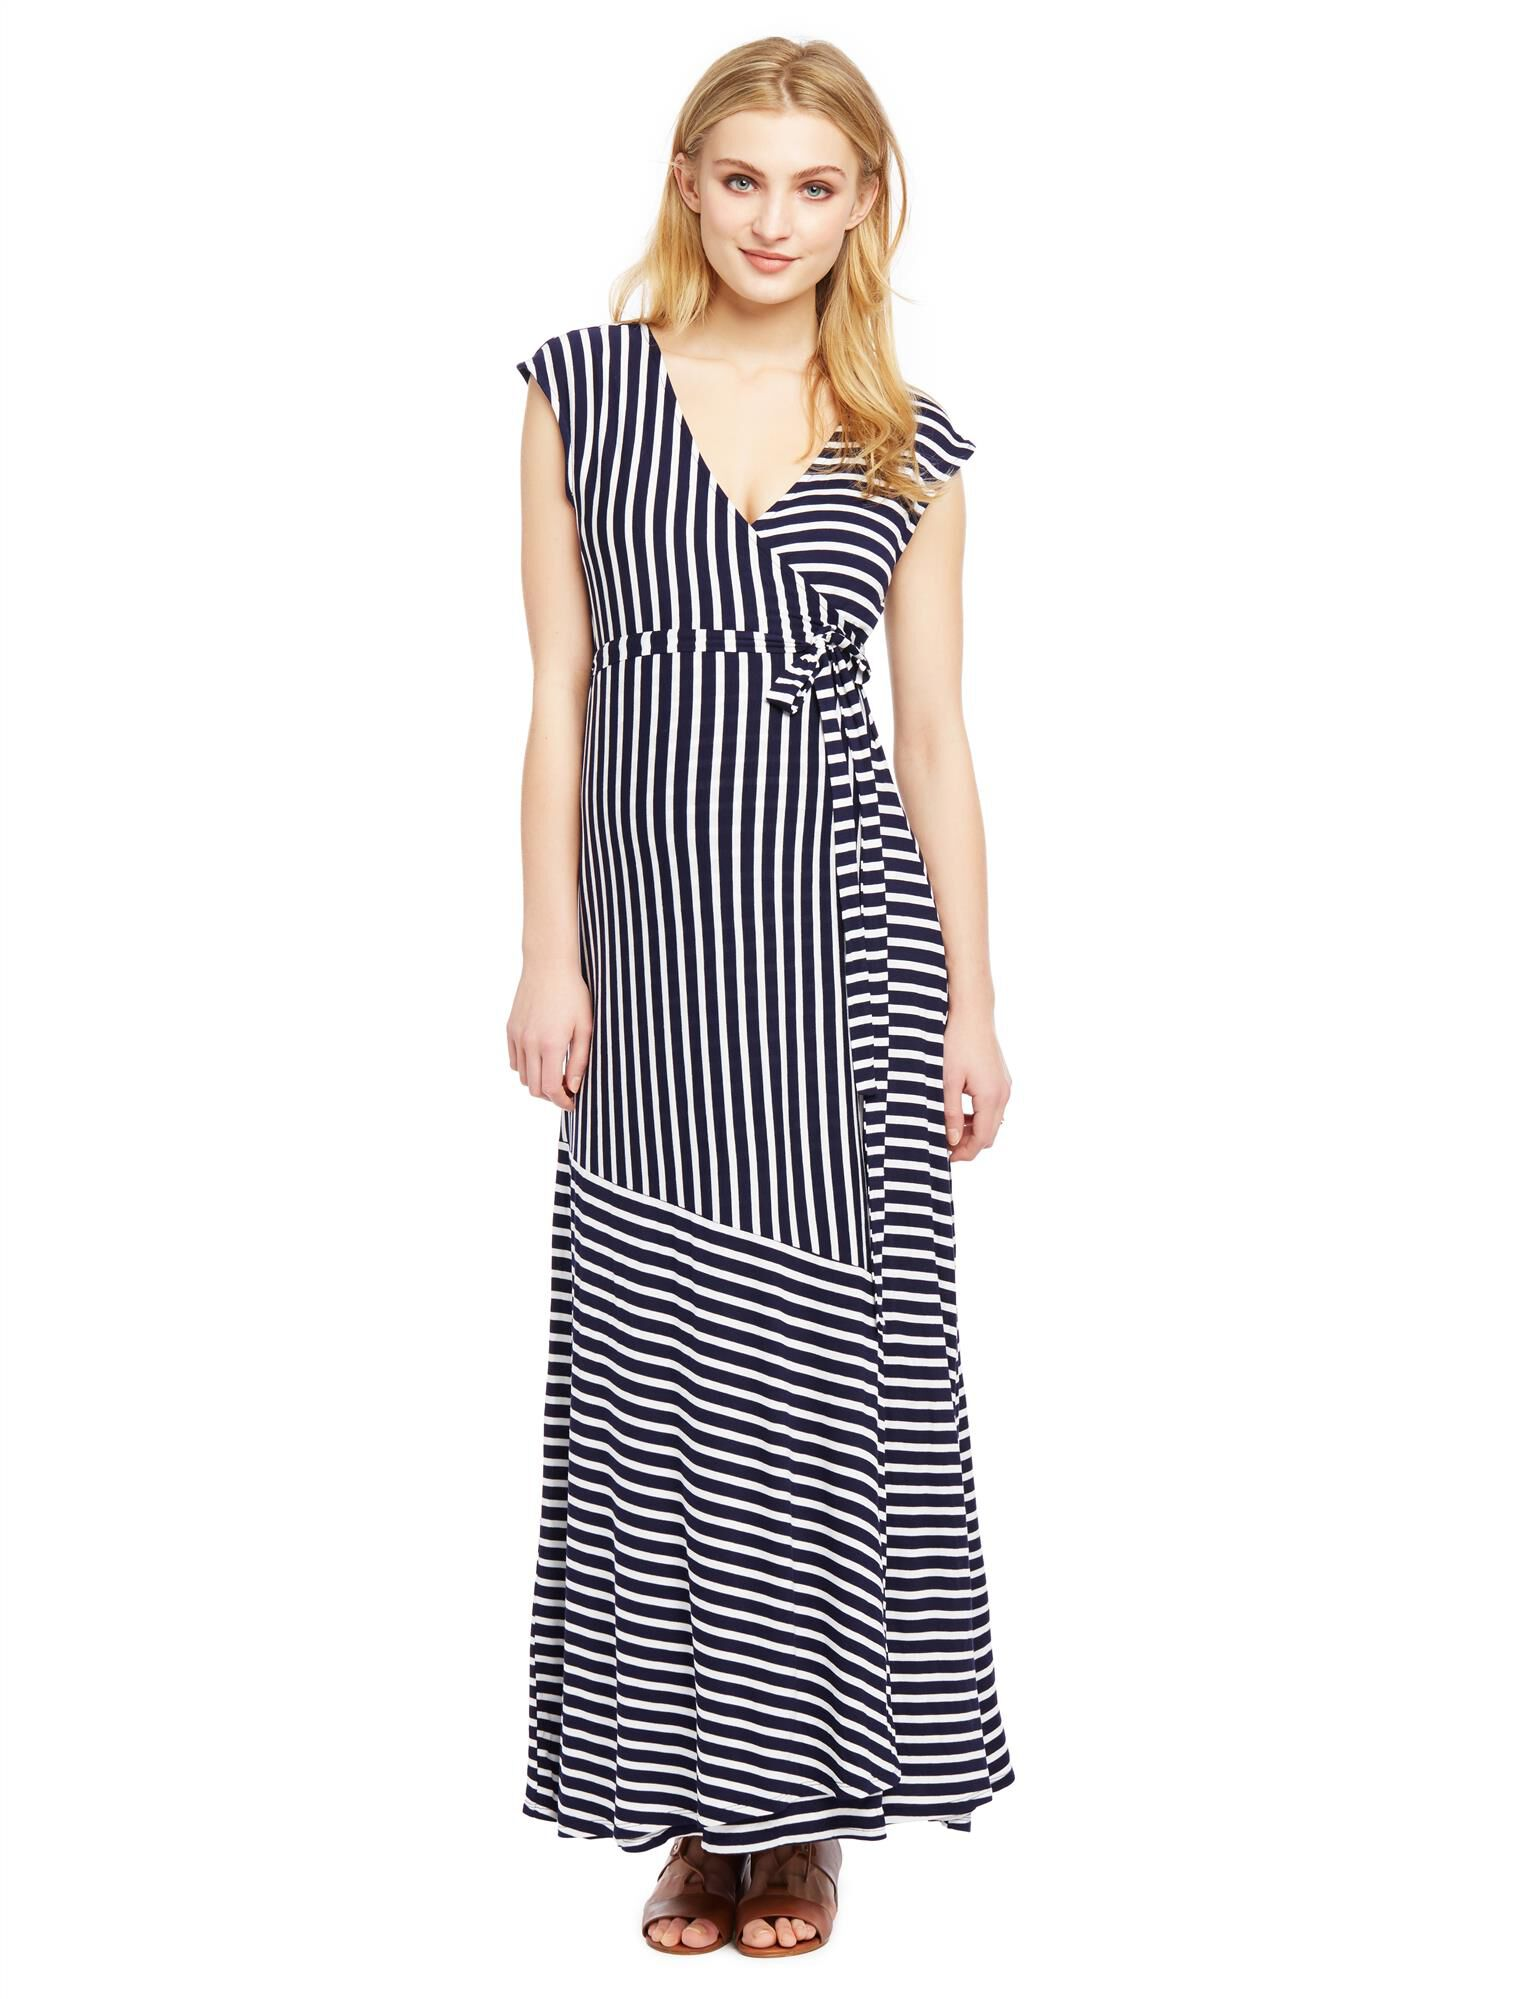 Jessica Simpson Variegated Striped Maternity Maxi Dress- Blue White Stripe